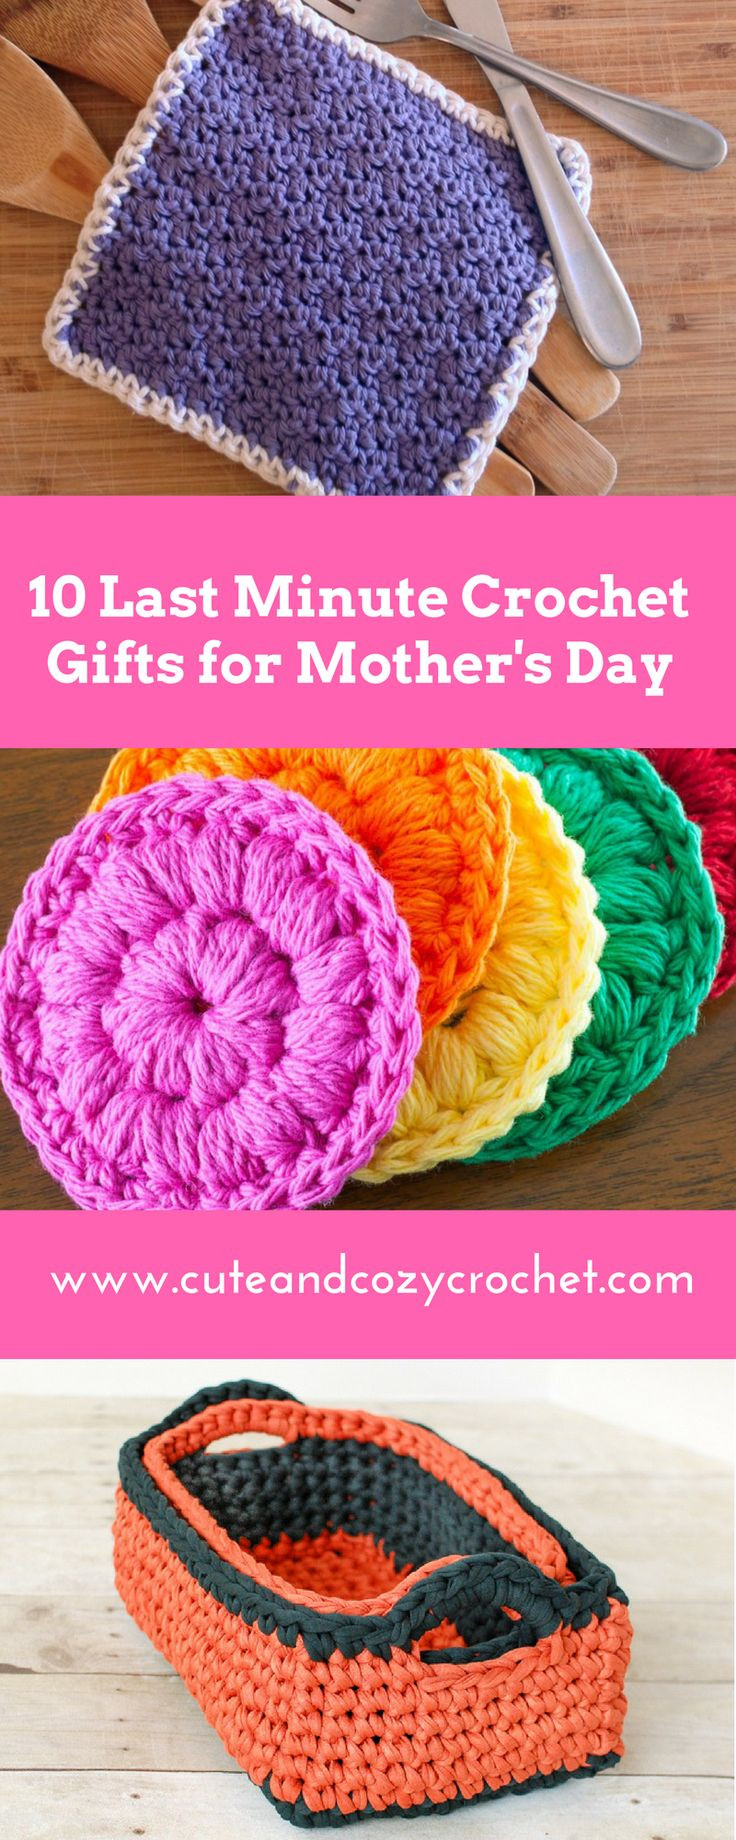 Best ideas about Crochet Gift Ideas . Save or Pin The 25 best Crochet ts ideas on Pinterest Now.